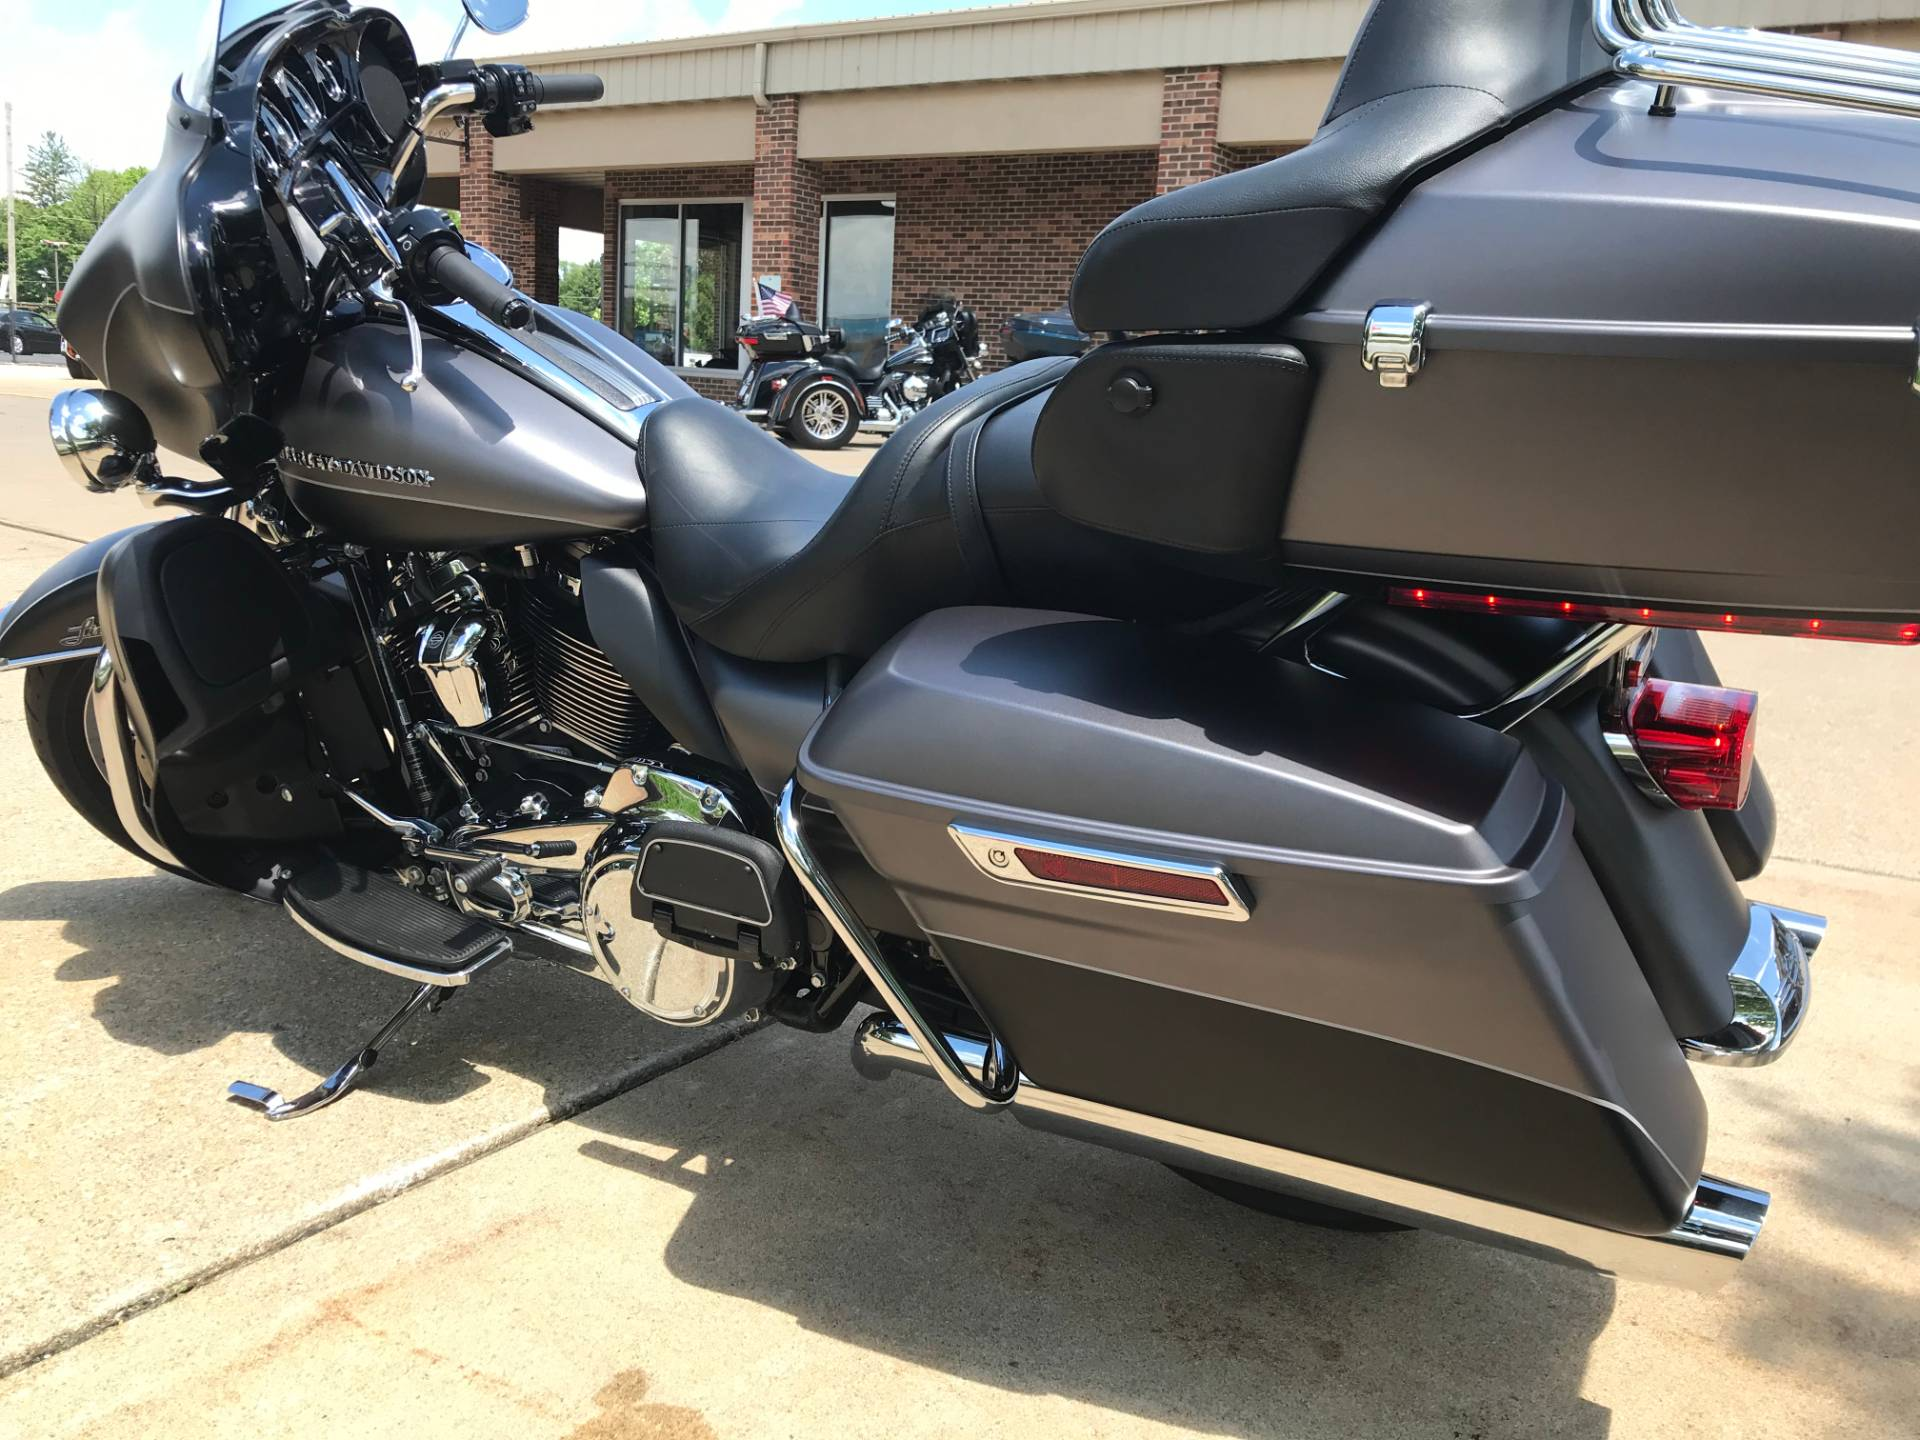 2017 Harley-Davidson Ultra Limited in Valparaiso, Indiana - Photo 5